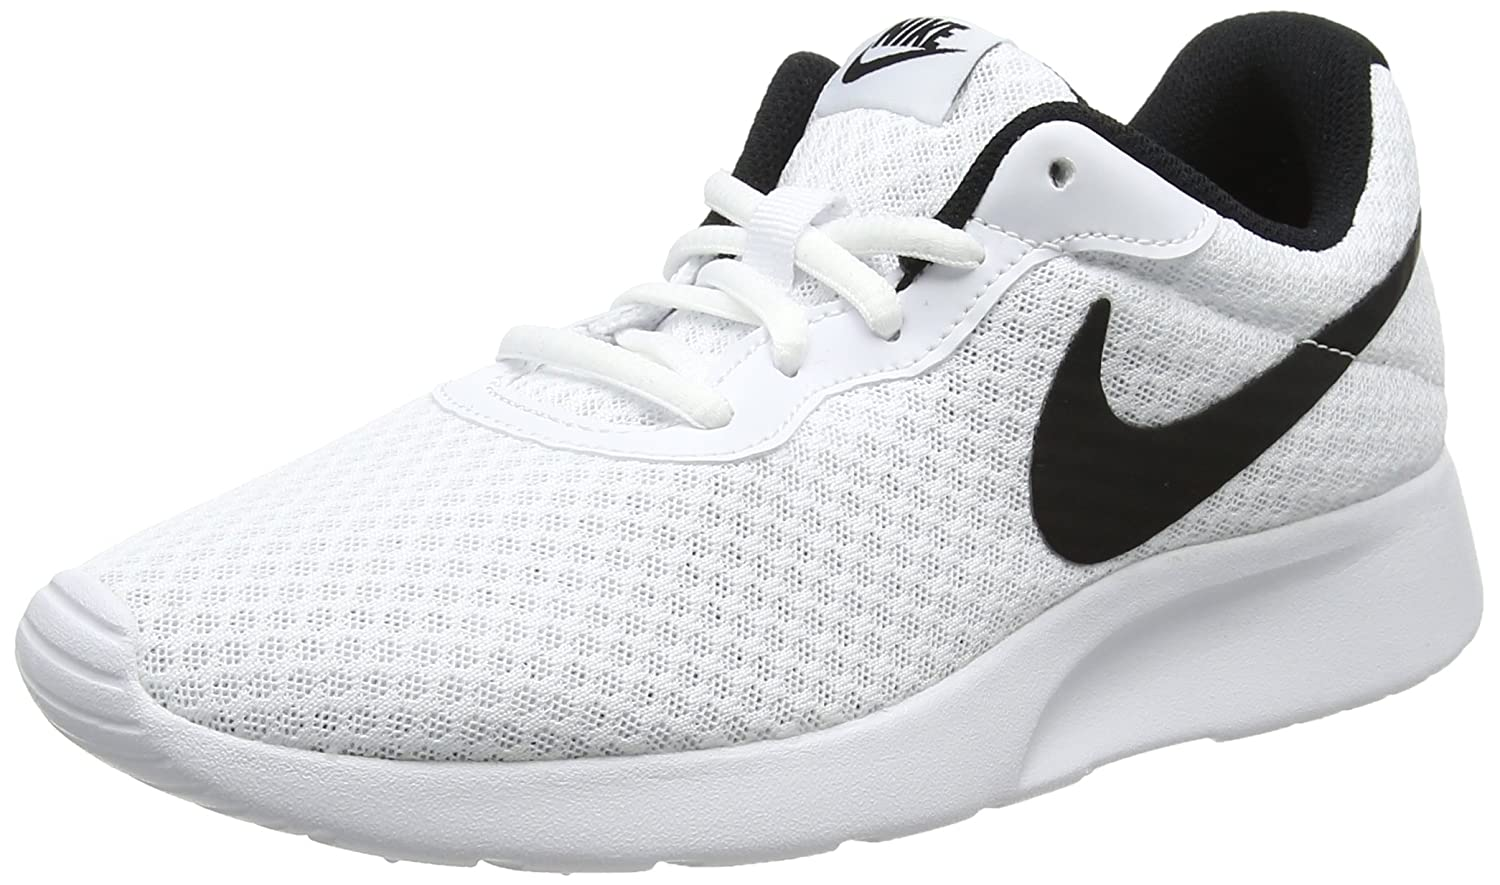 los angeles entire collection shoes for cheap Nike Women's Nike Tanjun White/Black Running Shoes Size 5.5